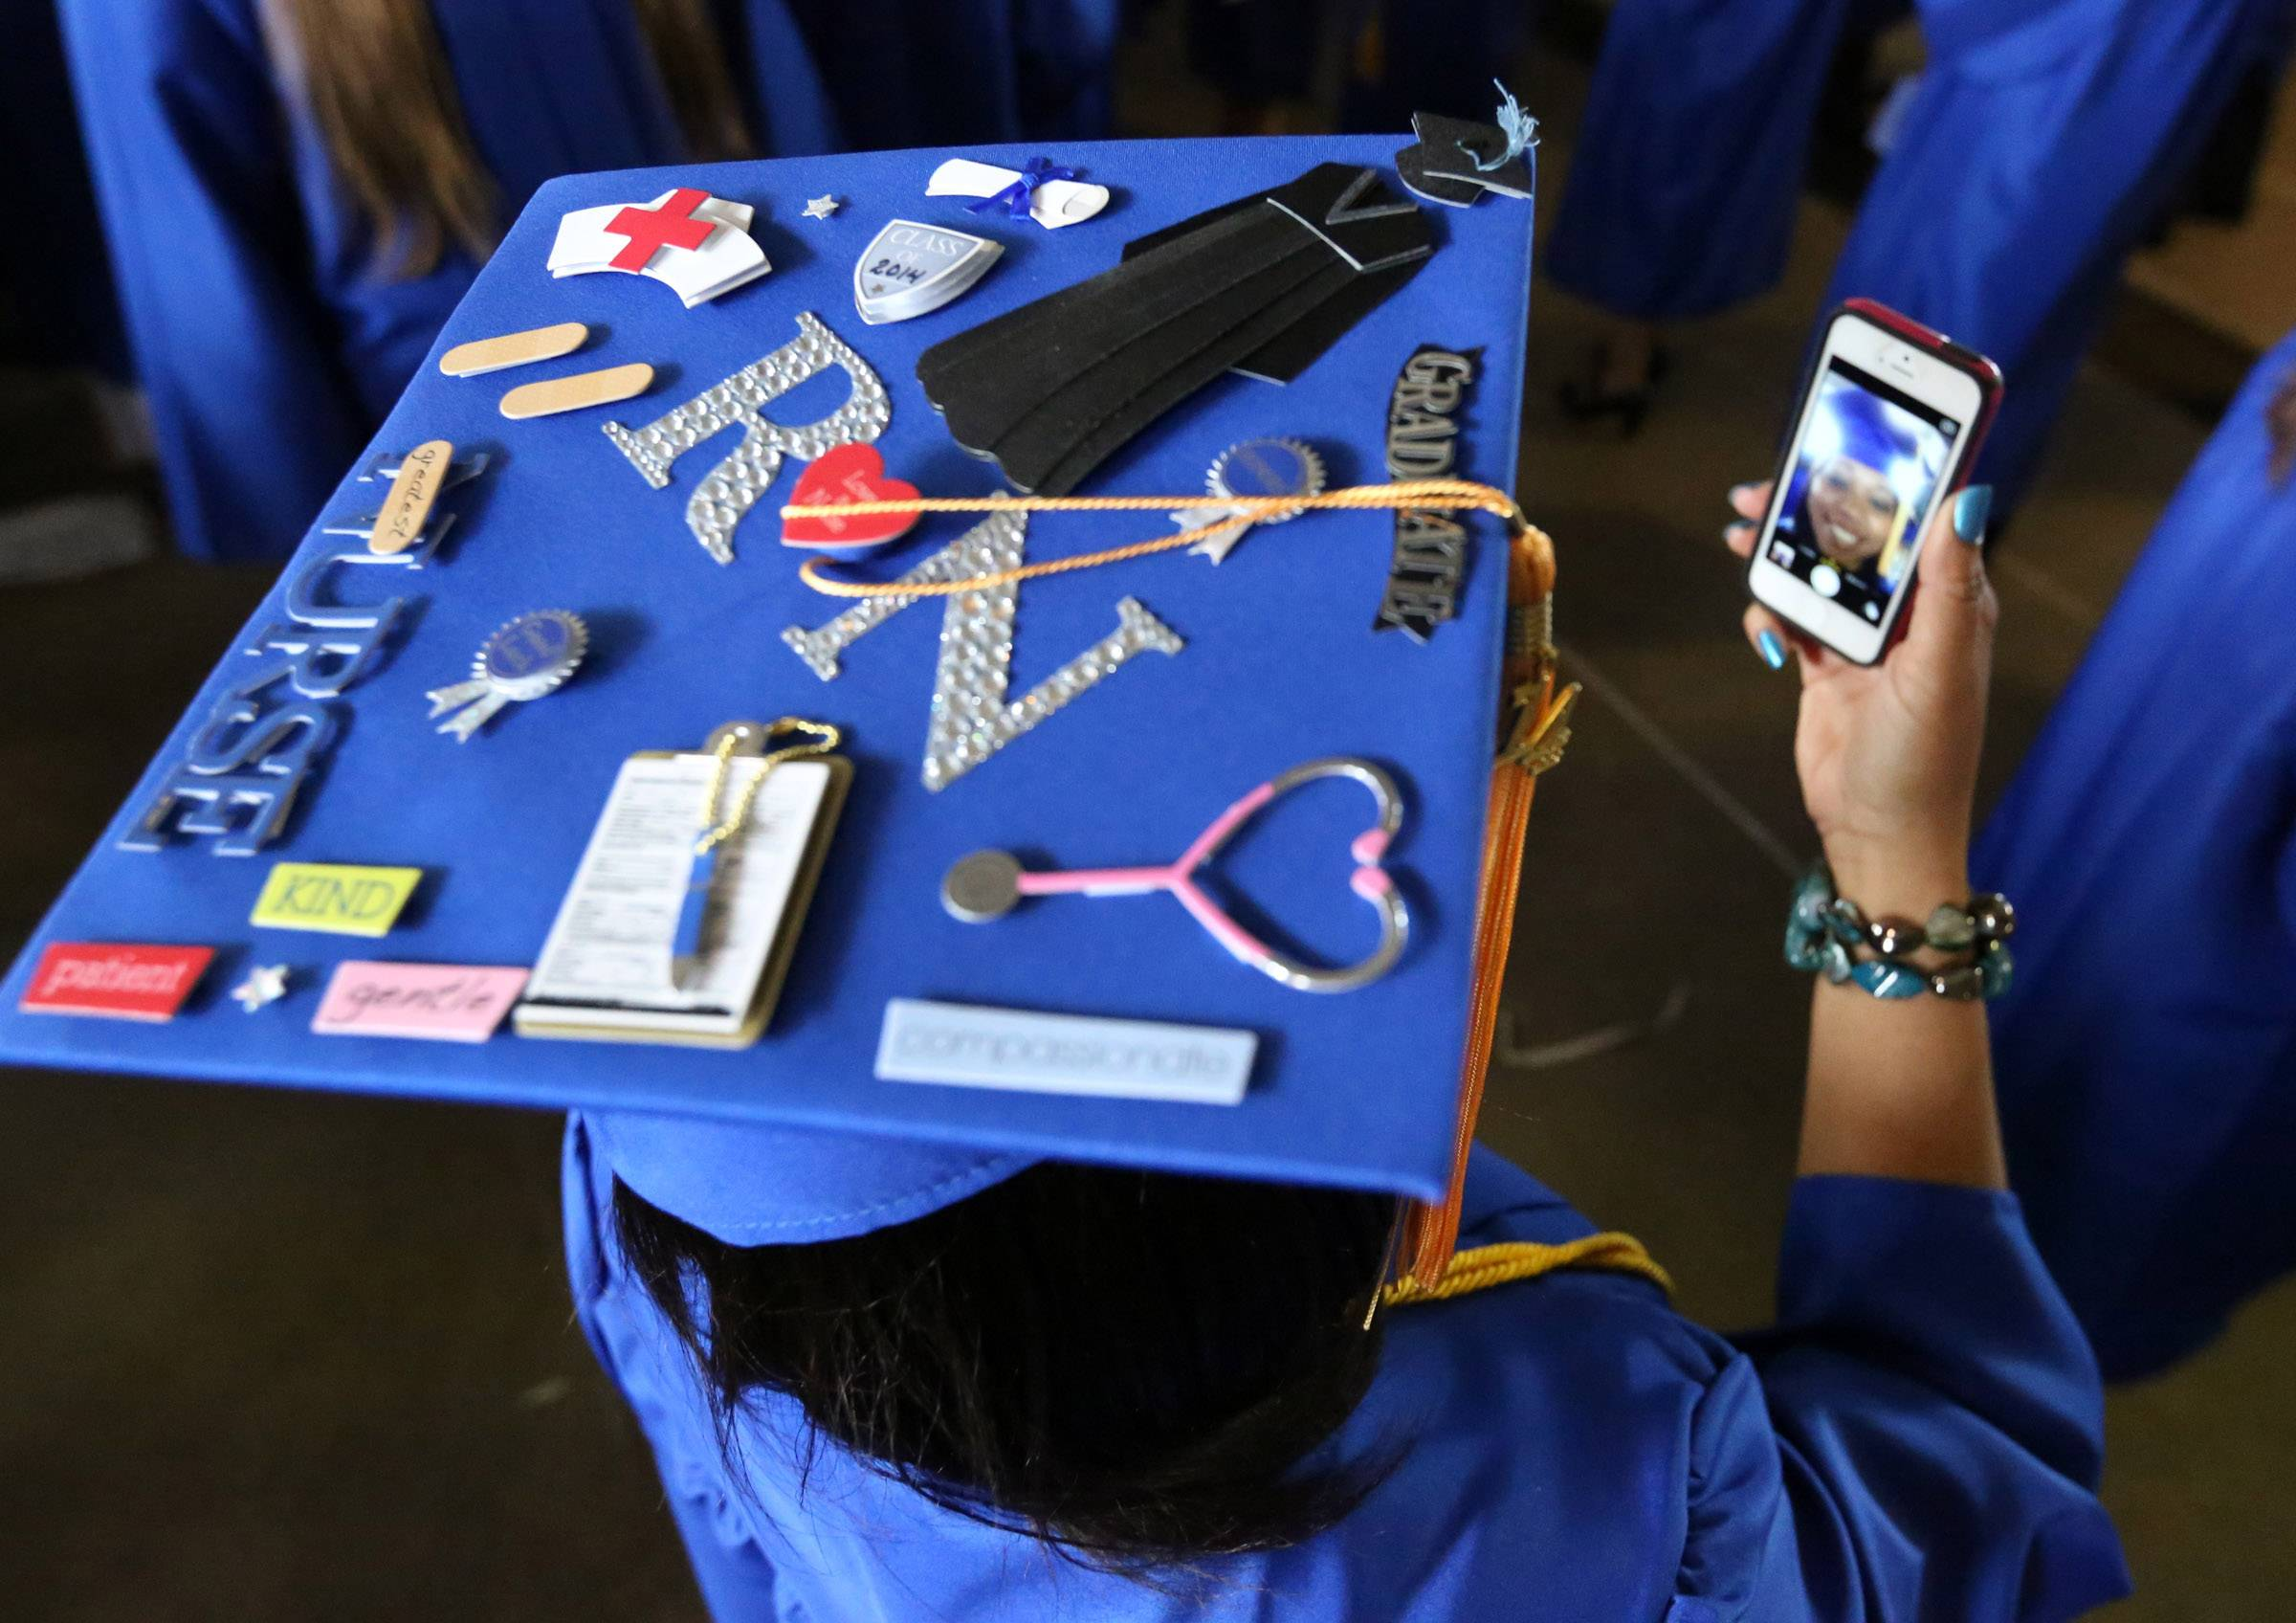 Lashuan Davis of Zion looks at her cellphone to change her decorated cap position before College of Lake County's 45th commencement ceremony on Saturday in Grayslake.